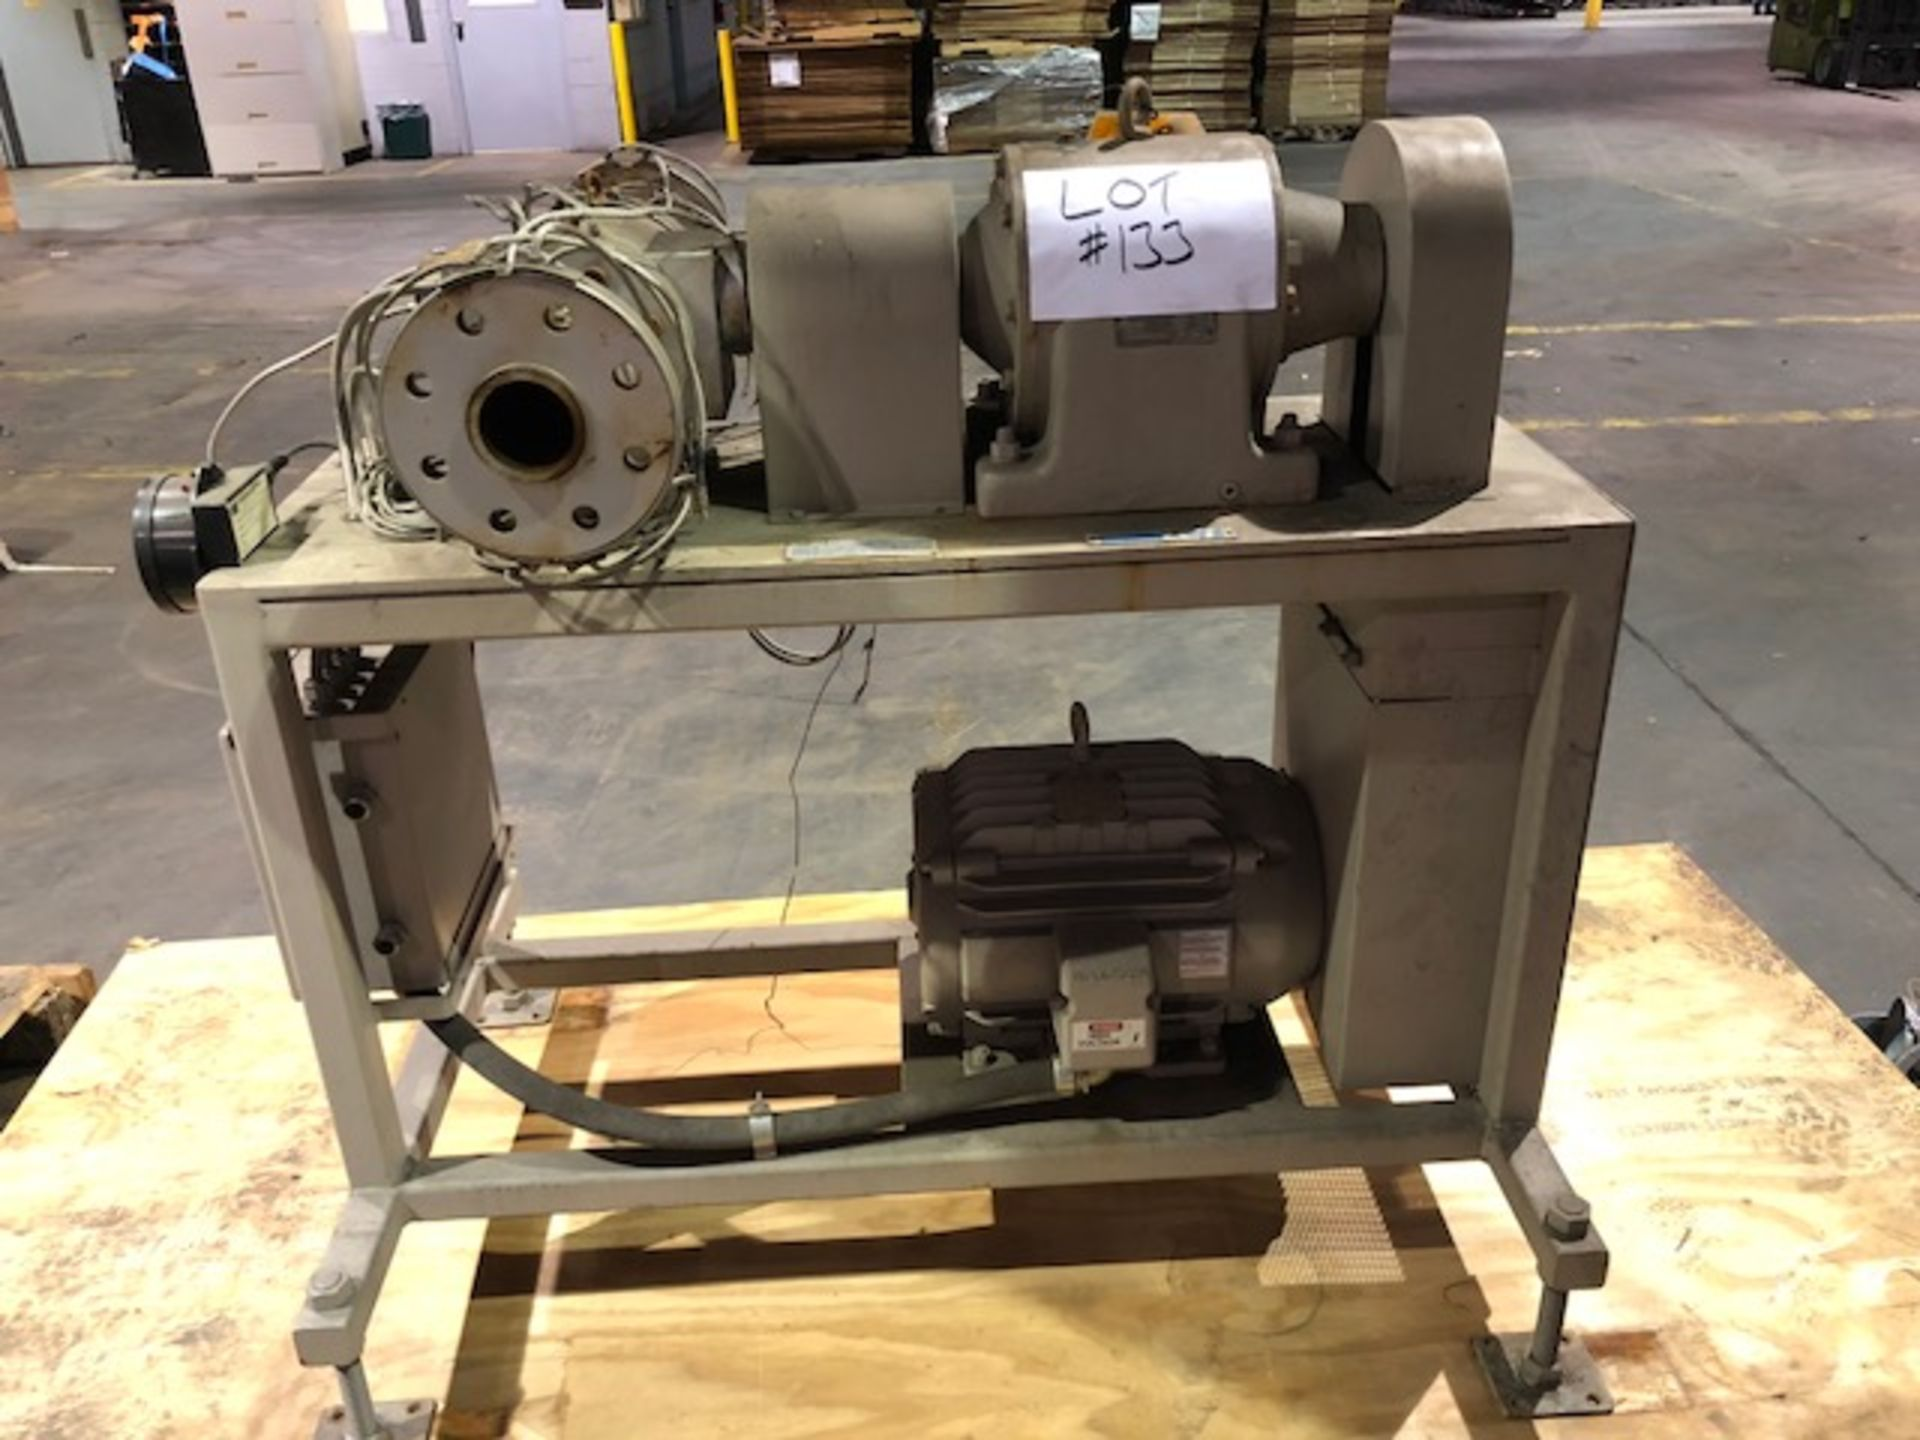 Lot 133 - LCI Extrusion Pump with control cabinet